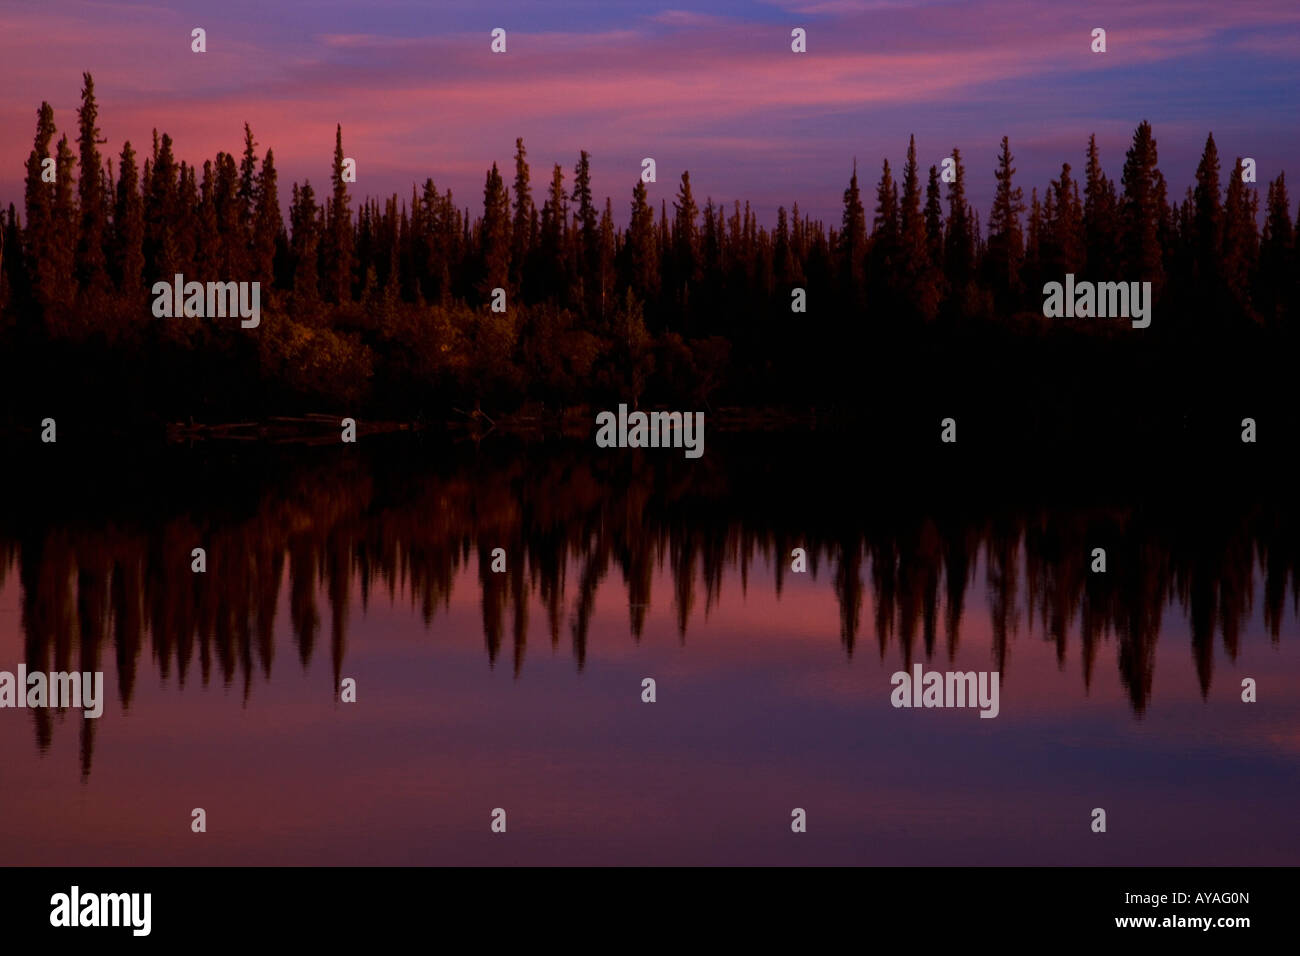 Trees reflected in water, NWT, Canada - Stock Image